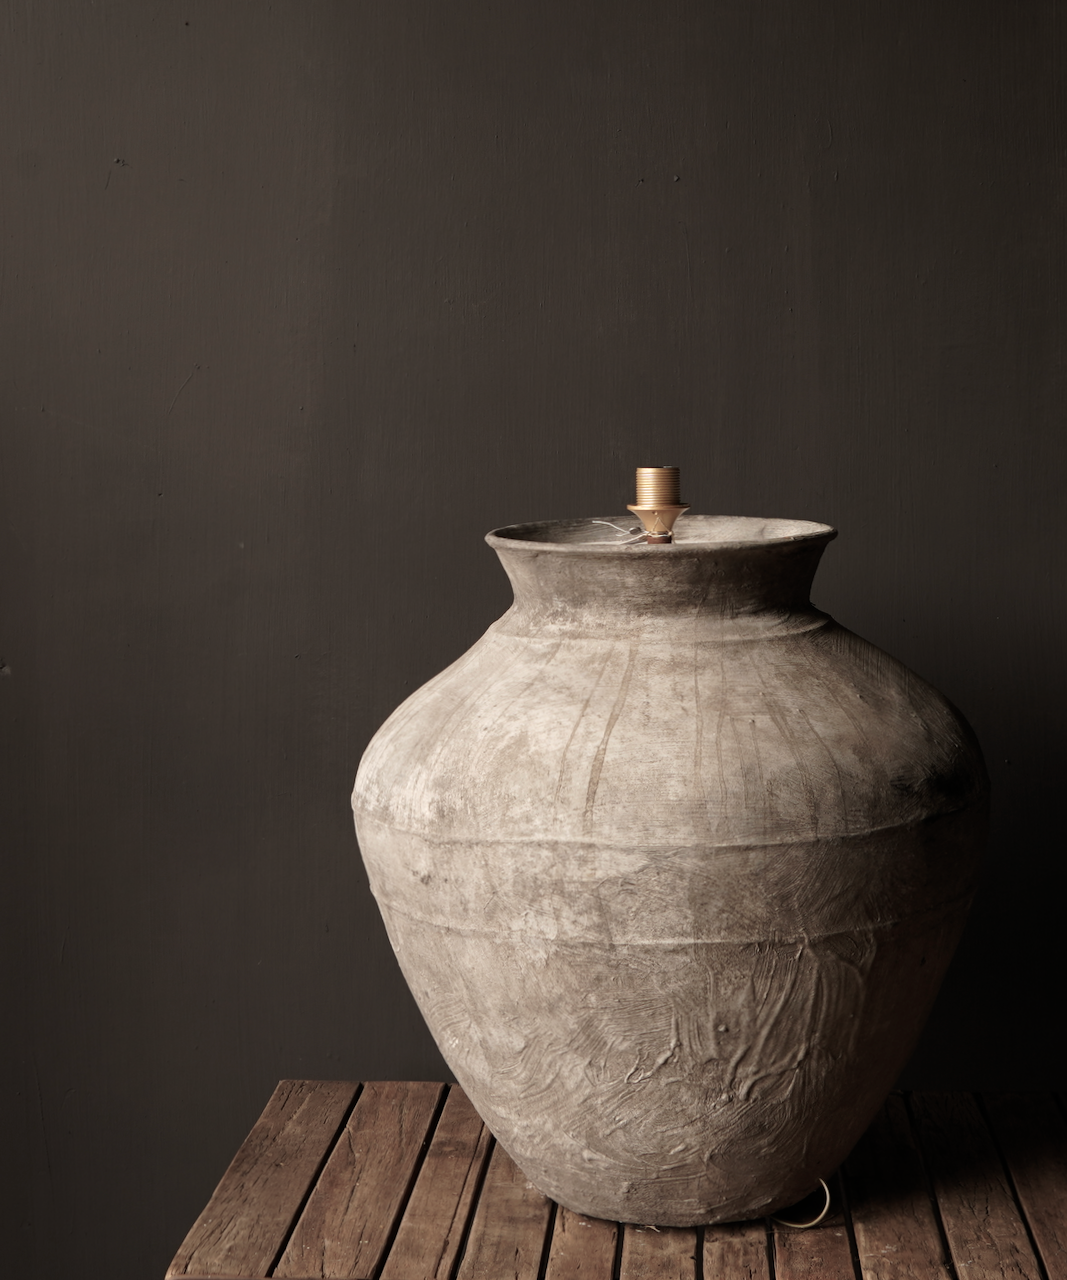 Jug lamp made from an old authentic terracotta Indian water jug - Copy-5